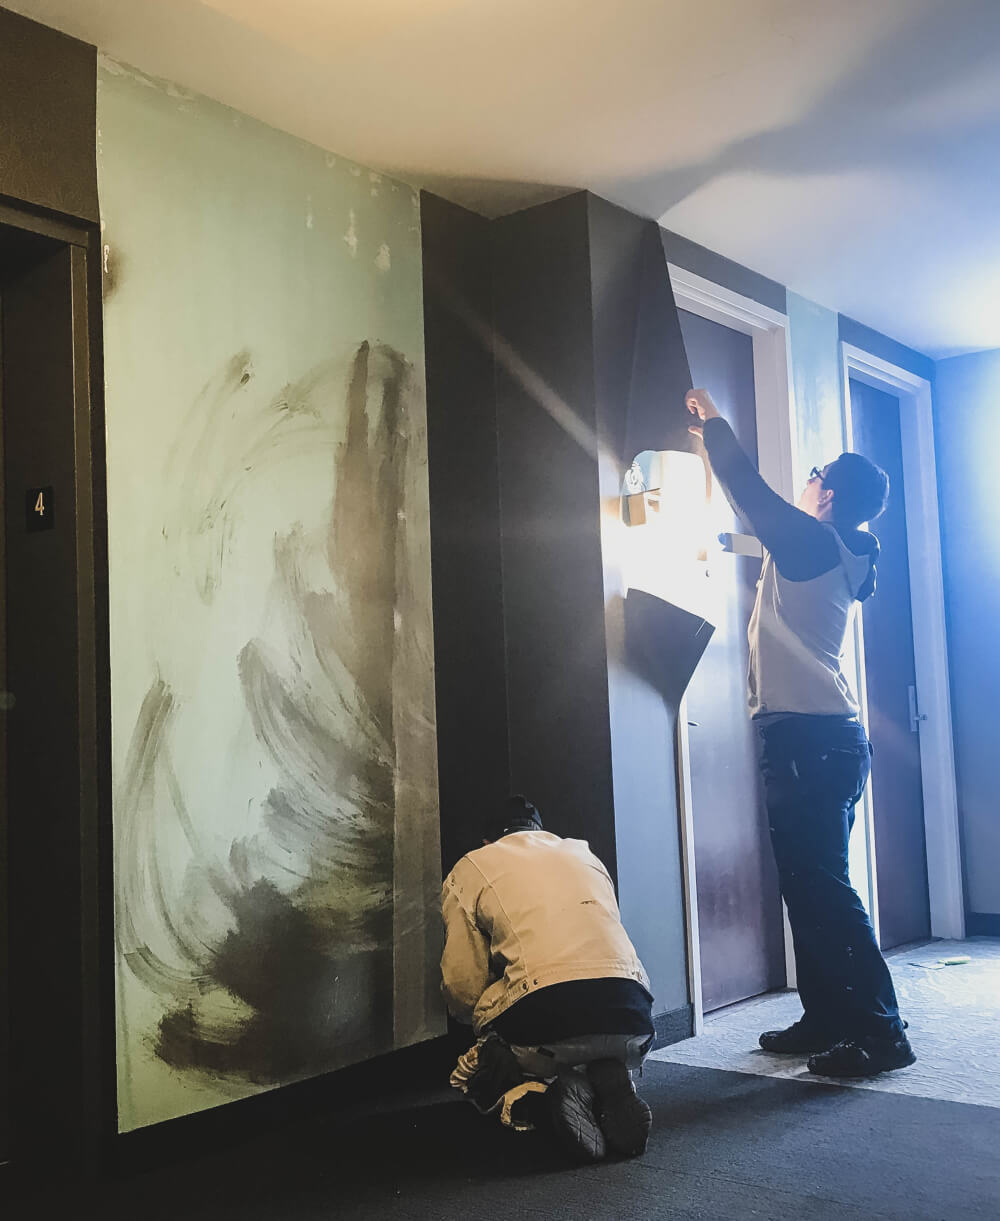 Professional wallpaper removal- two New Approach team members removing wallpaper from an elevator foyer